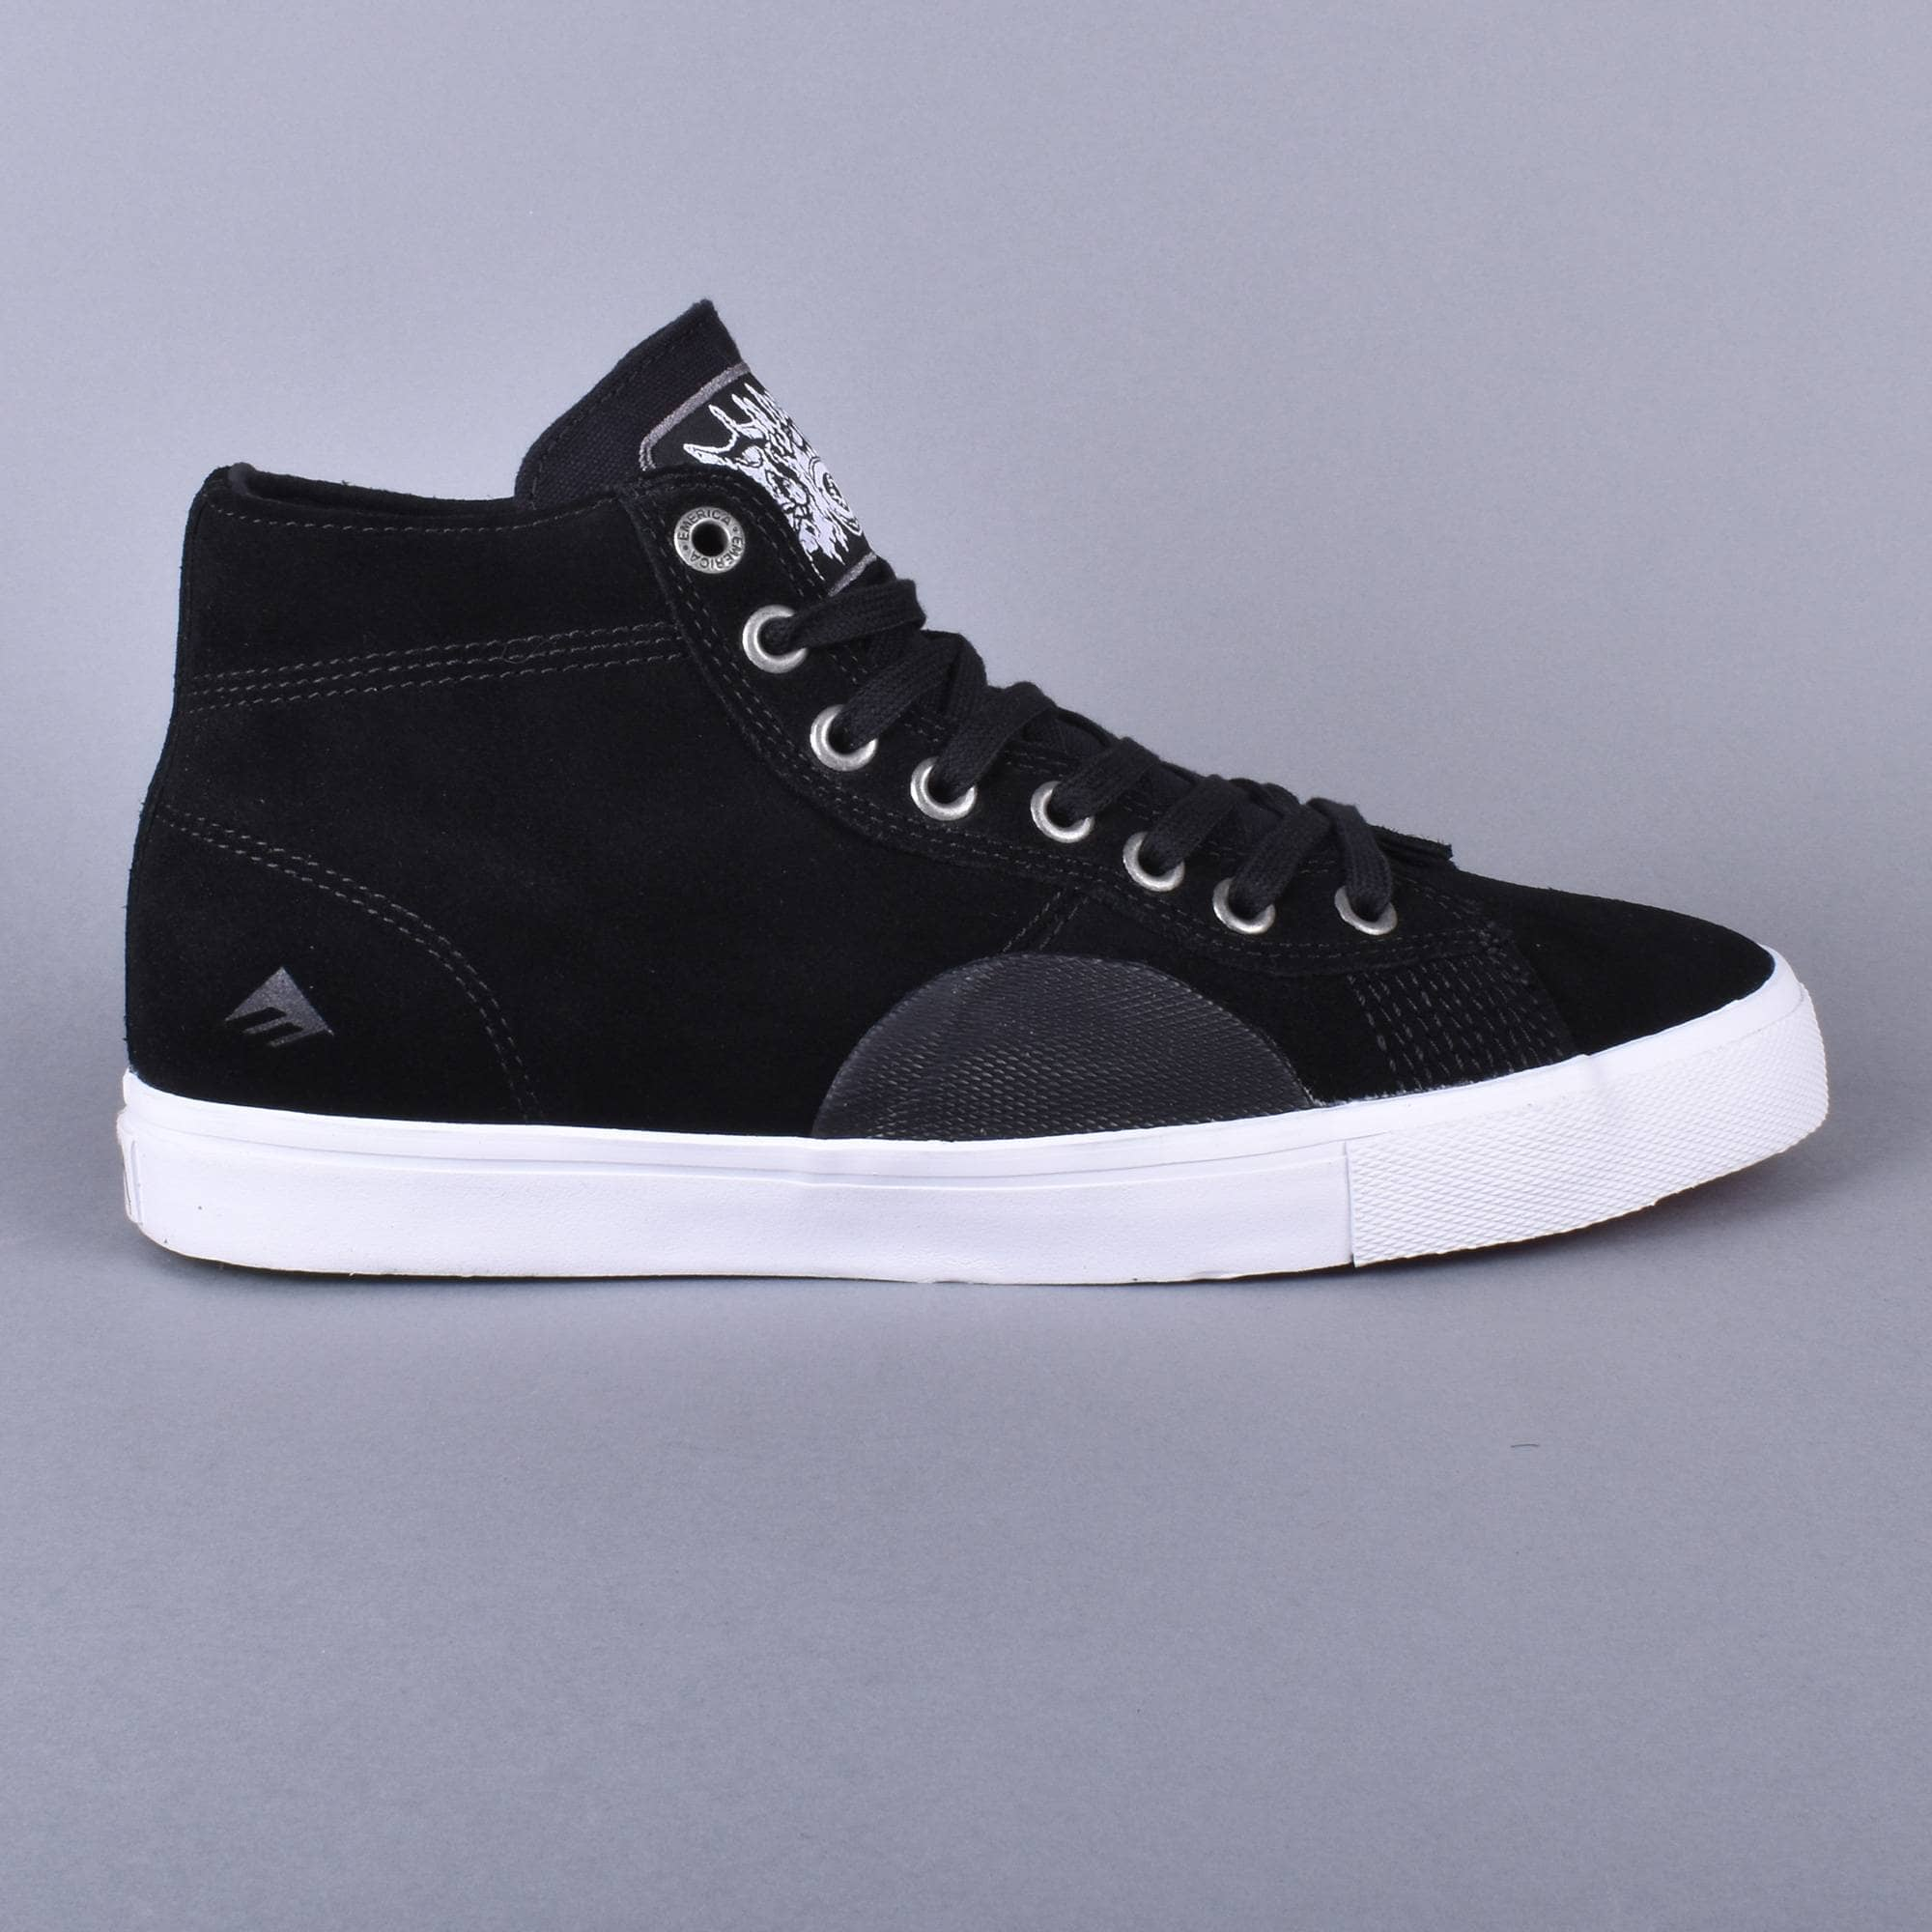 Funeral French Skate Shoes - Black